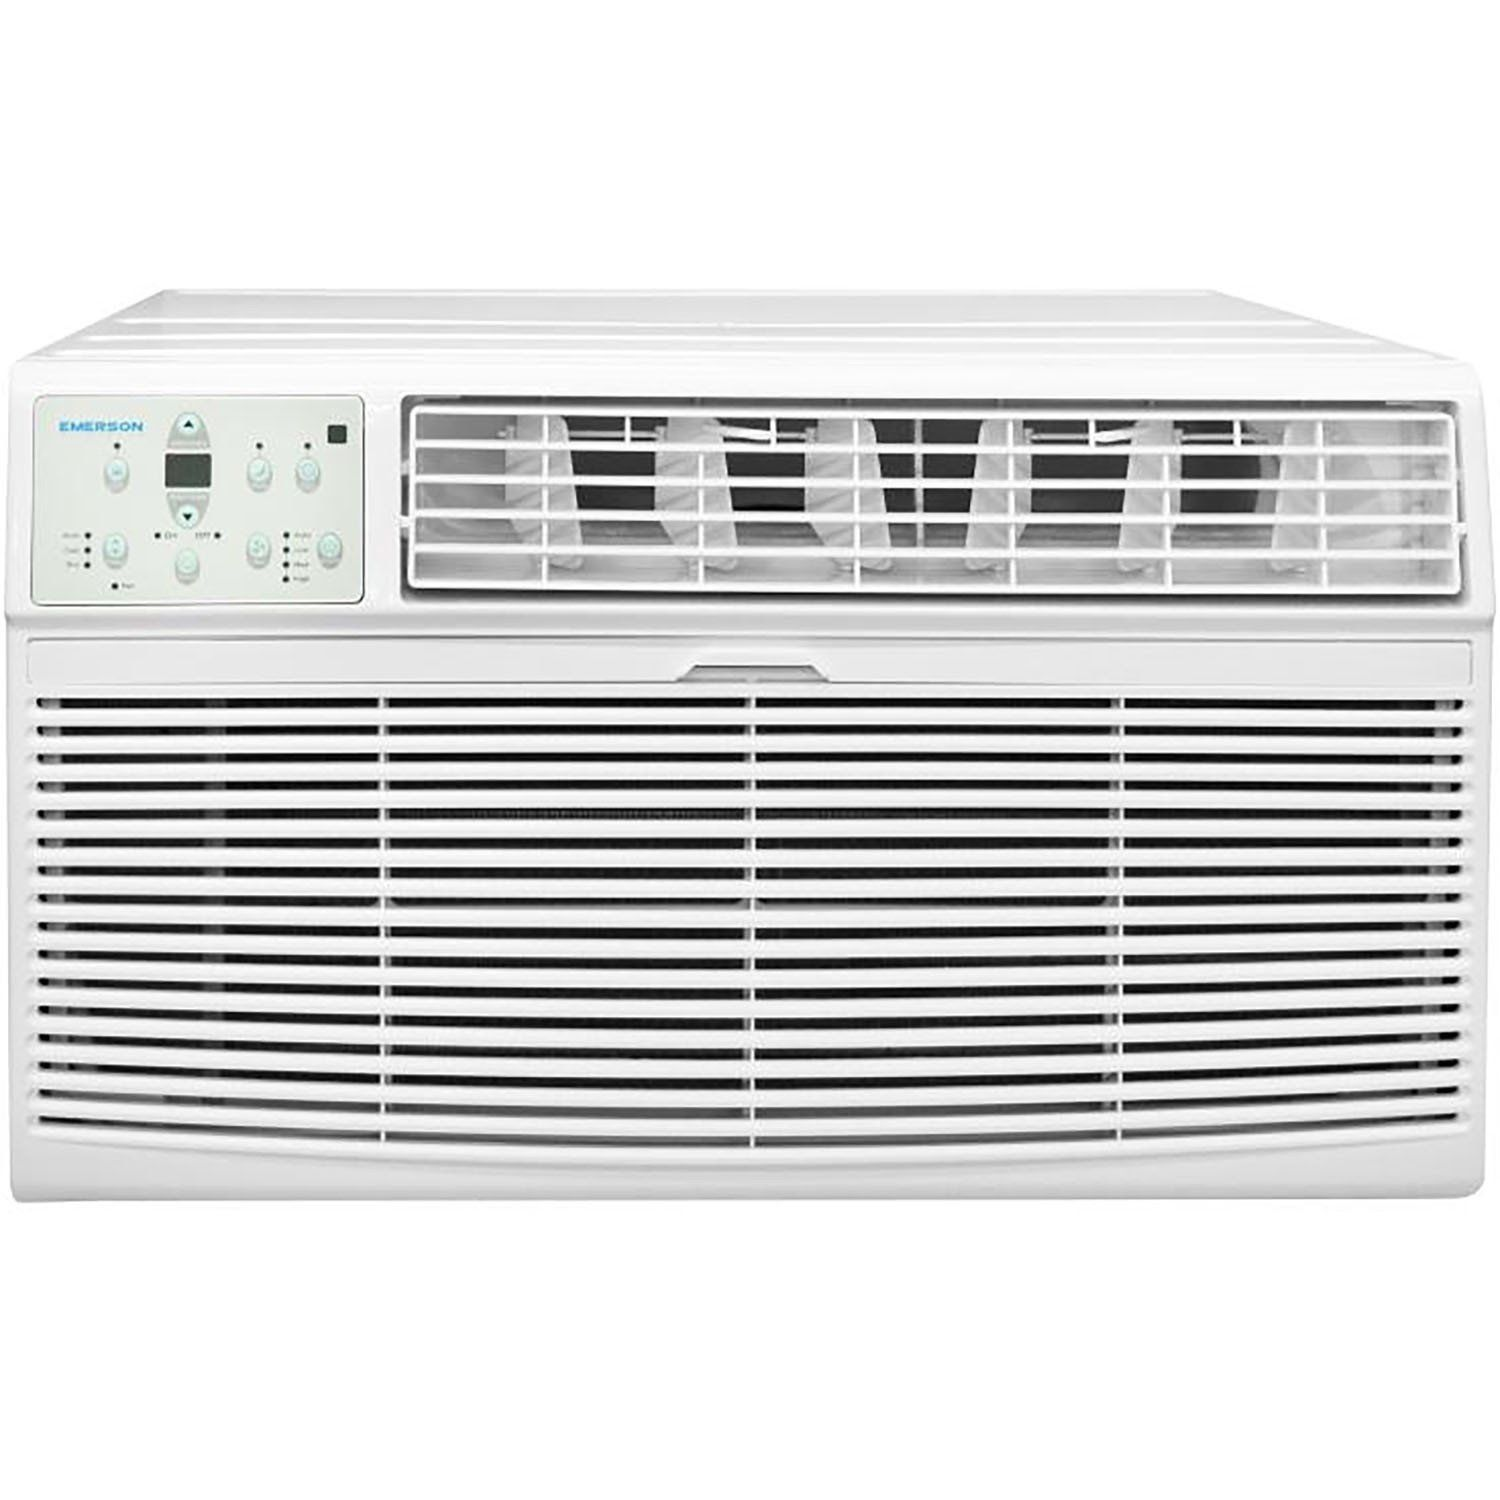 115V 8,000 BTU Through The Wall Air Conditioner with